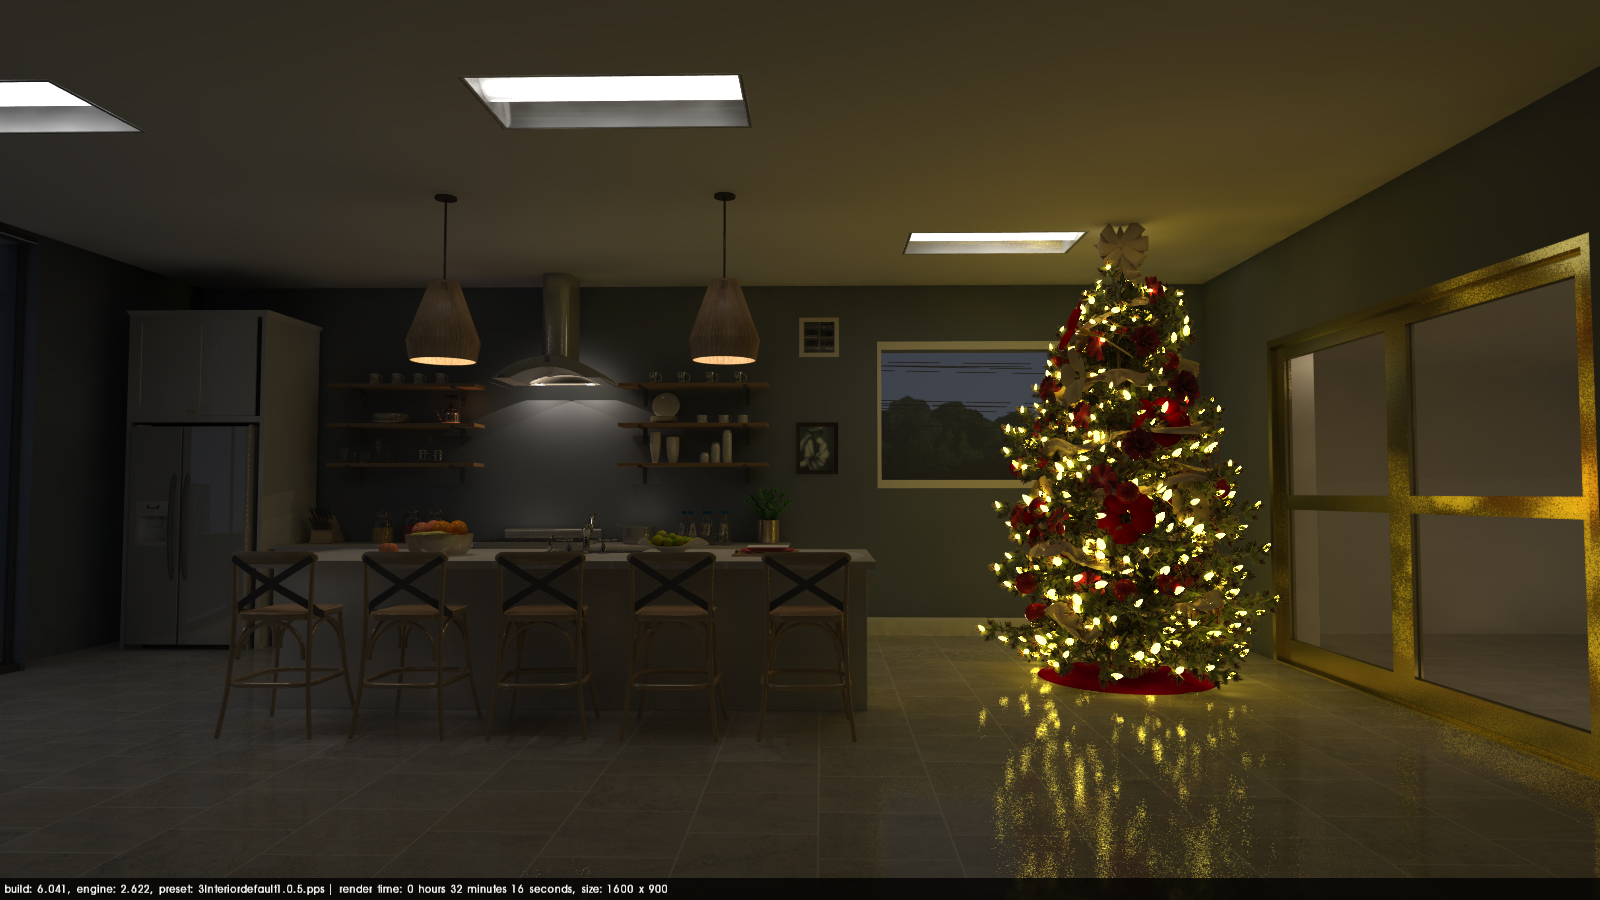 large-kitchen-show-room3 2020-01-02 10355000000.png